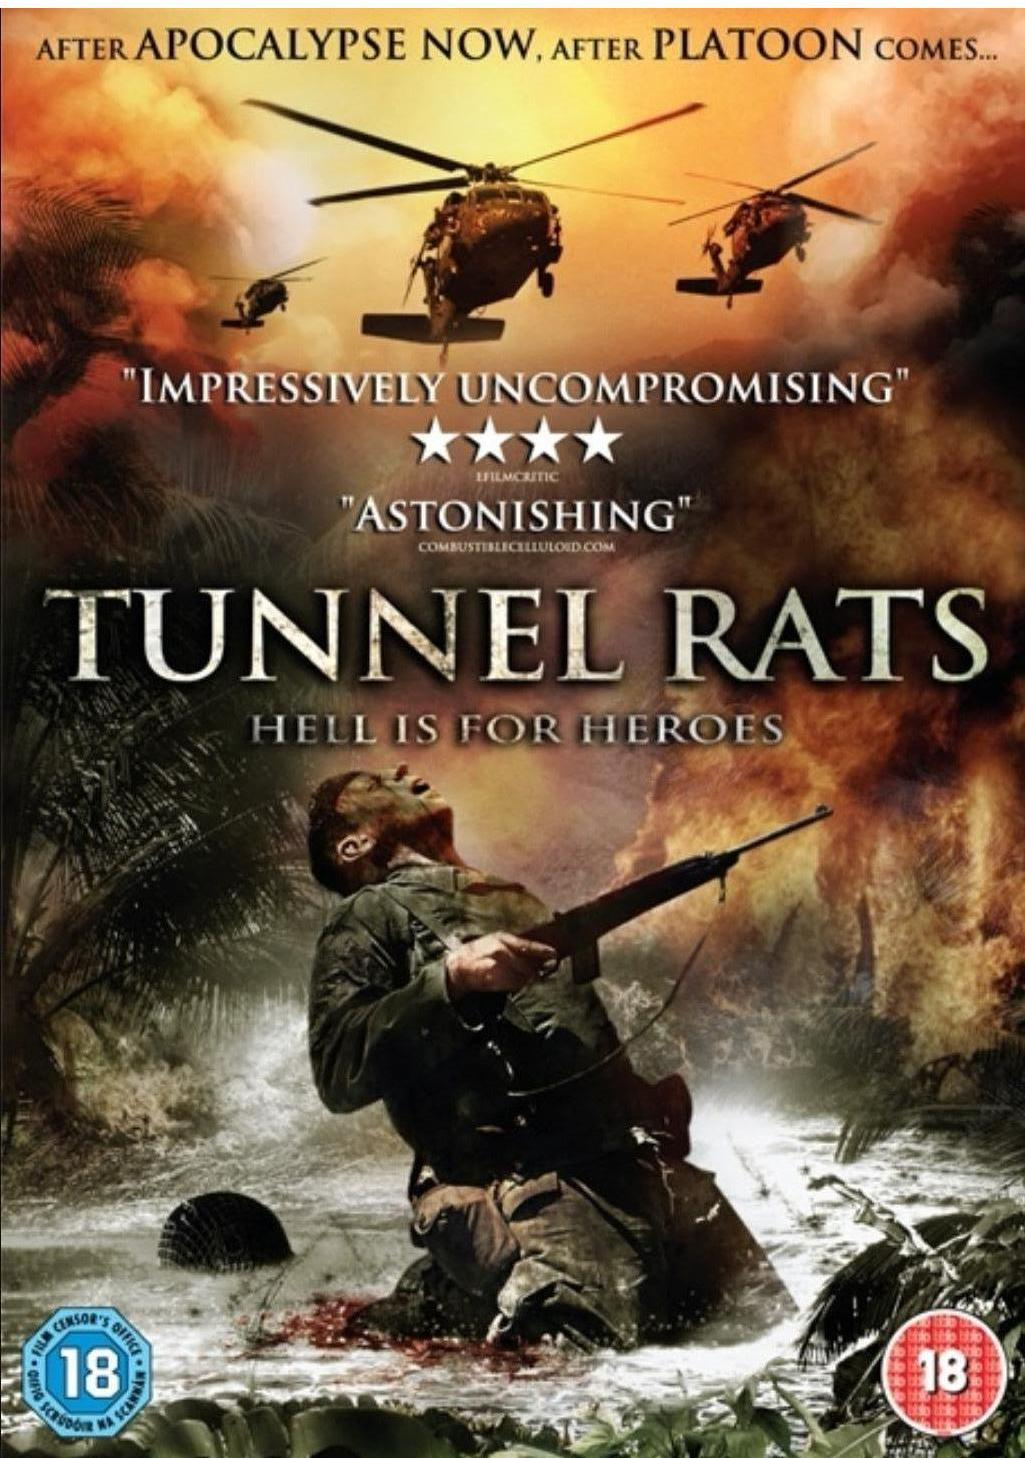 1968 Tunnel Rats</b></p>